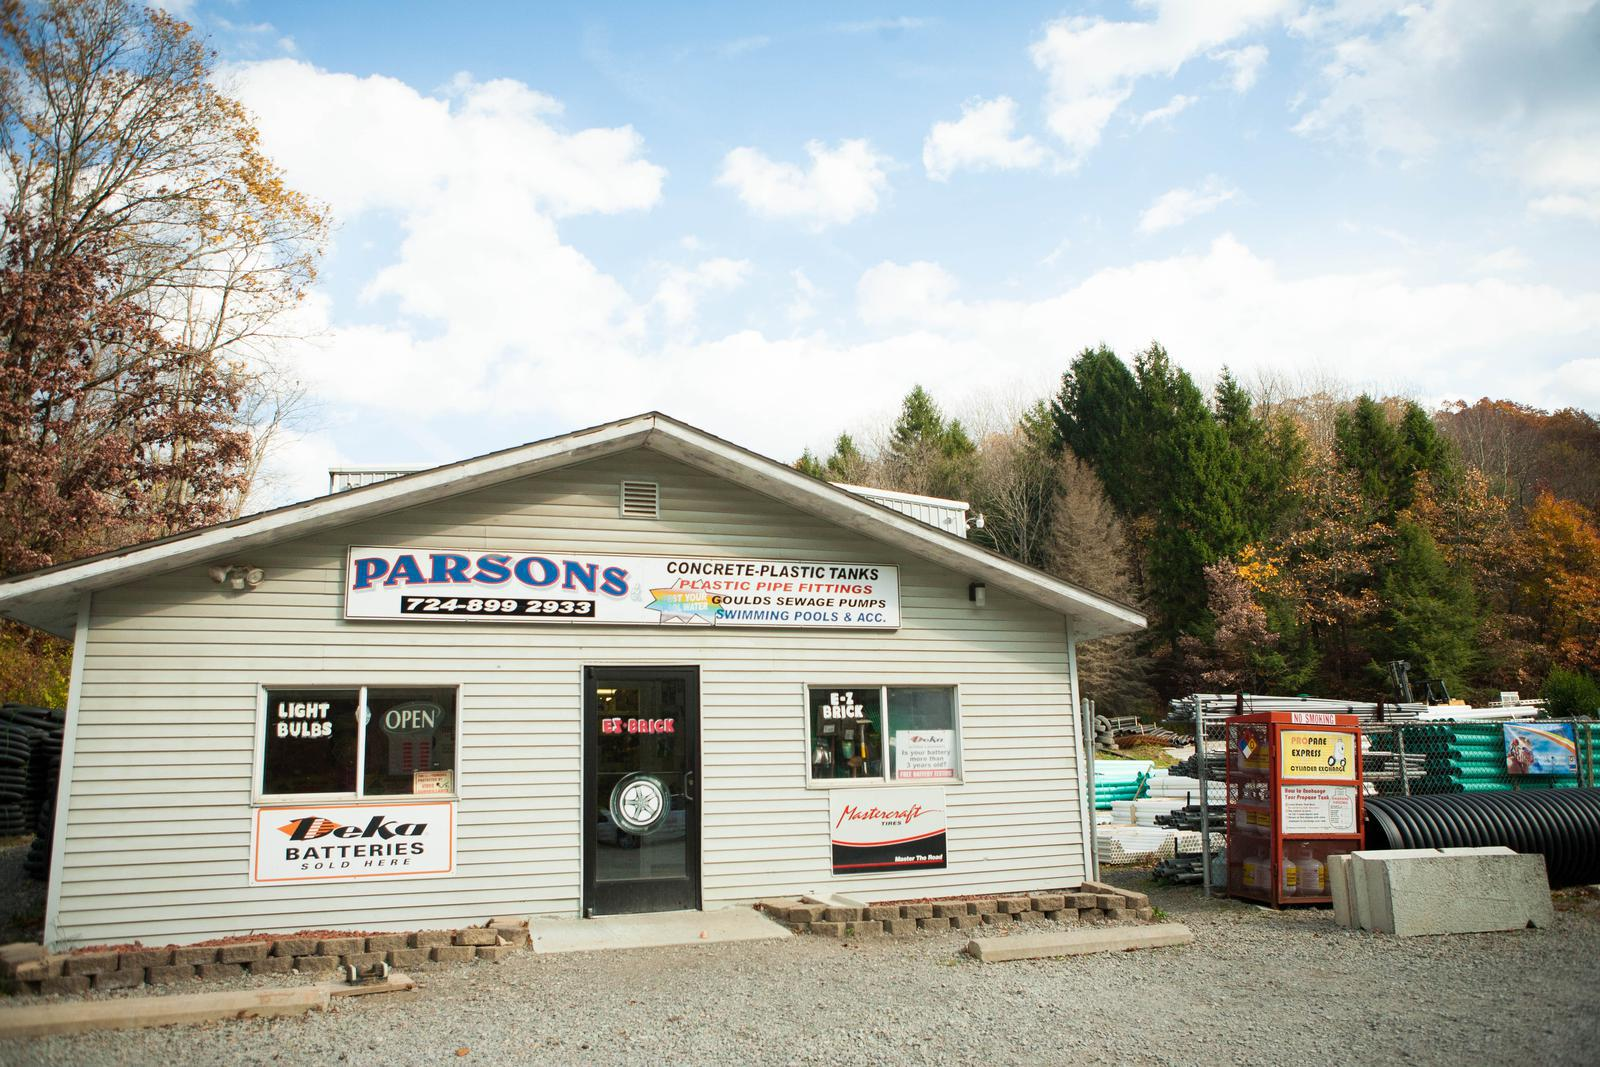 Online Hardware Store Parsons, Inc  Hookstown, PA (724) 899-2933